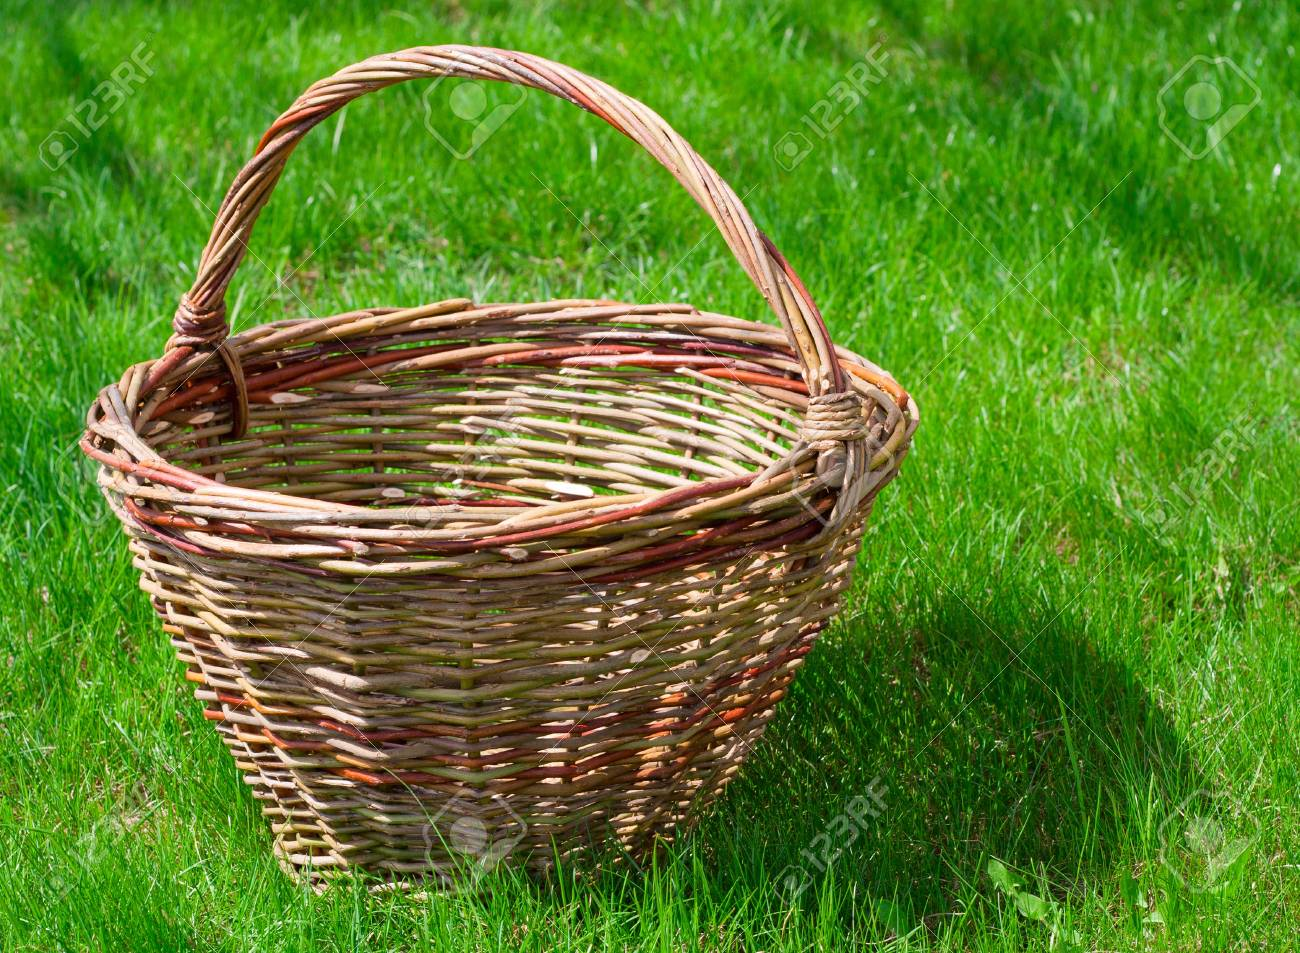 Old Wicker Basket On A Green Garden Grass Stock Photo, Picture And ...